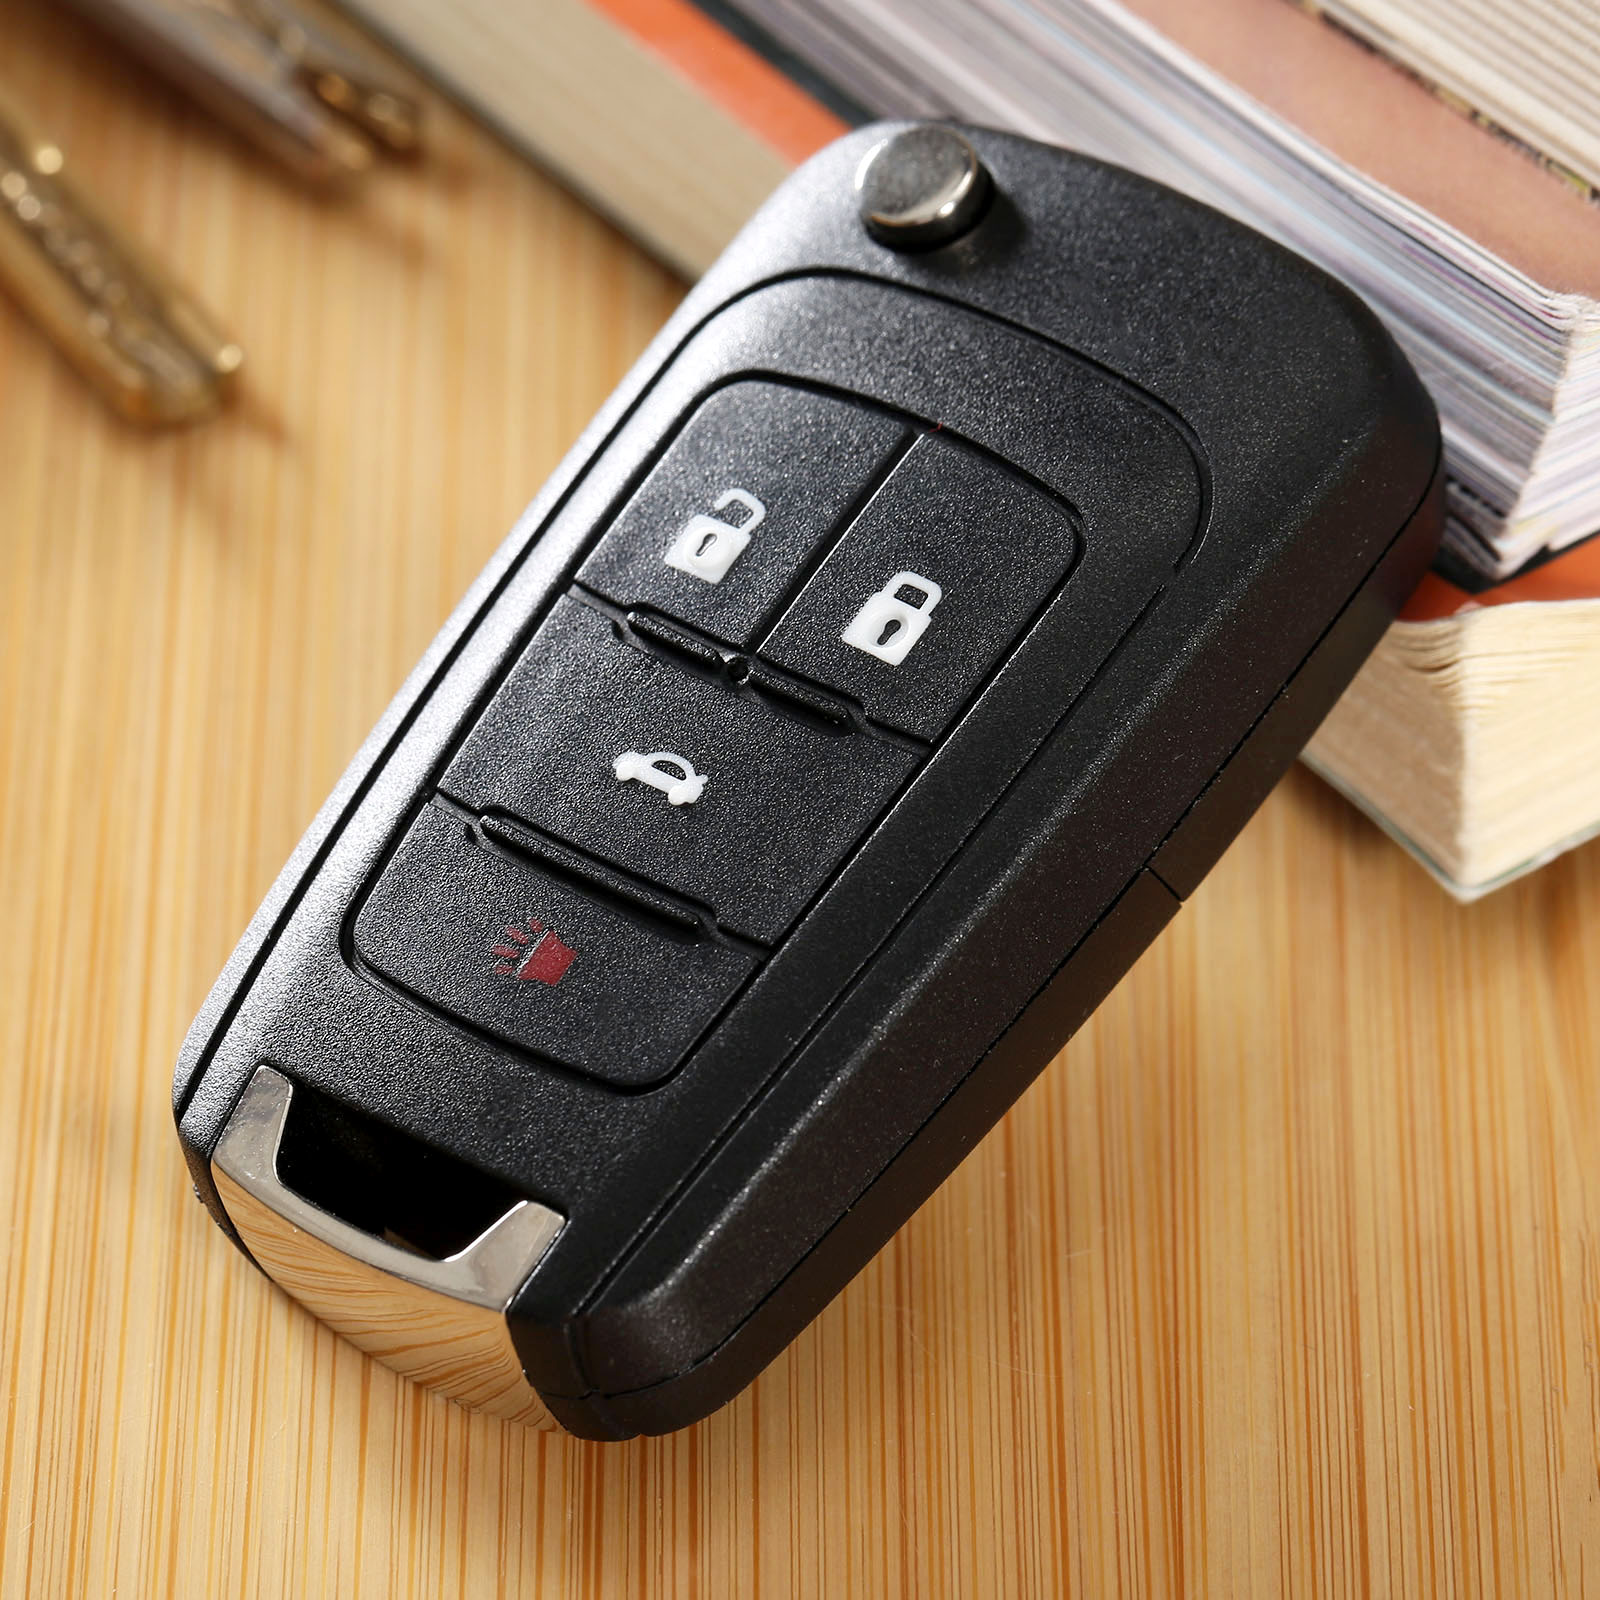 ④Car Replacement Folding Flip Remote Key Case Shell For Chevrolet